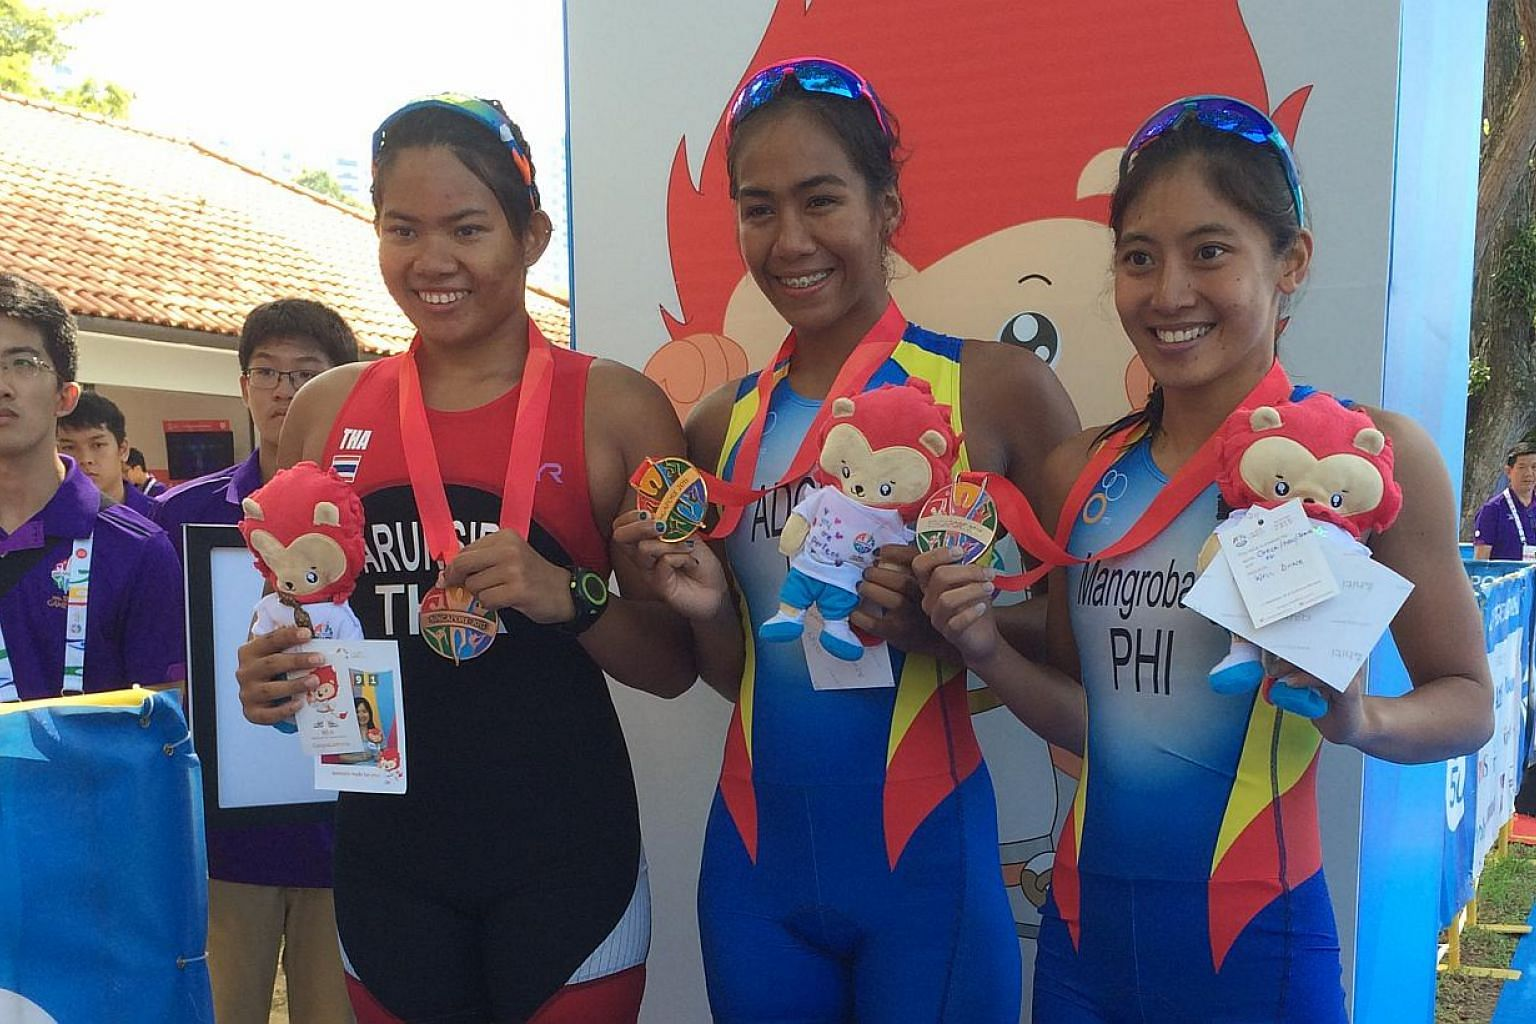 Filipino Maria Claire Adorna (centre) won her country's first gold medal of the SEA Games in the women's triathlonon June 6, 2015. On her right is compatriot and silver medallist Marion Kim Mangrobang, who won silver, while Thailand'sSanr